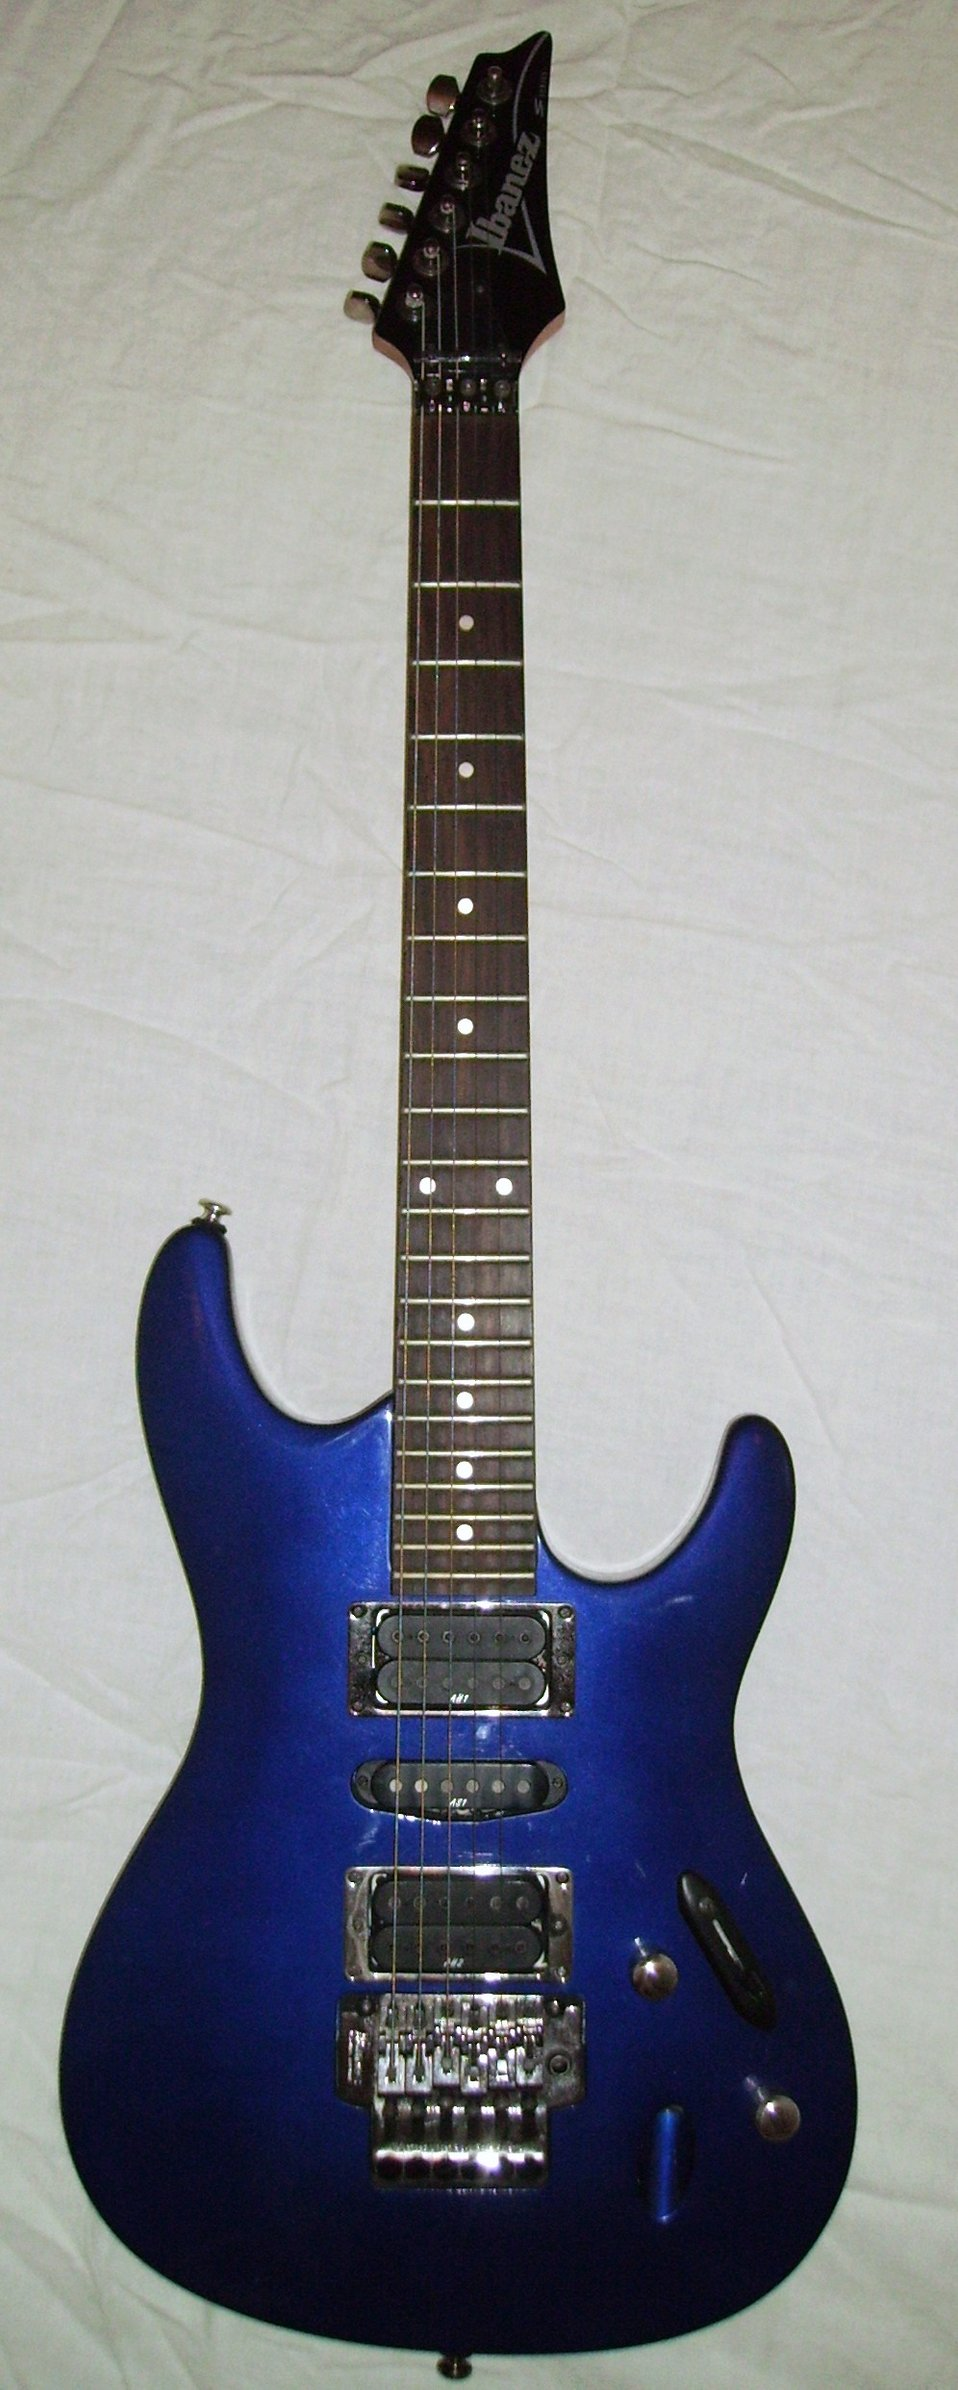 An Ibanez S-470 guitar